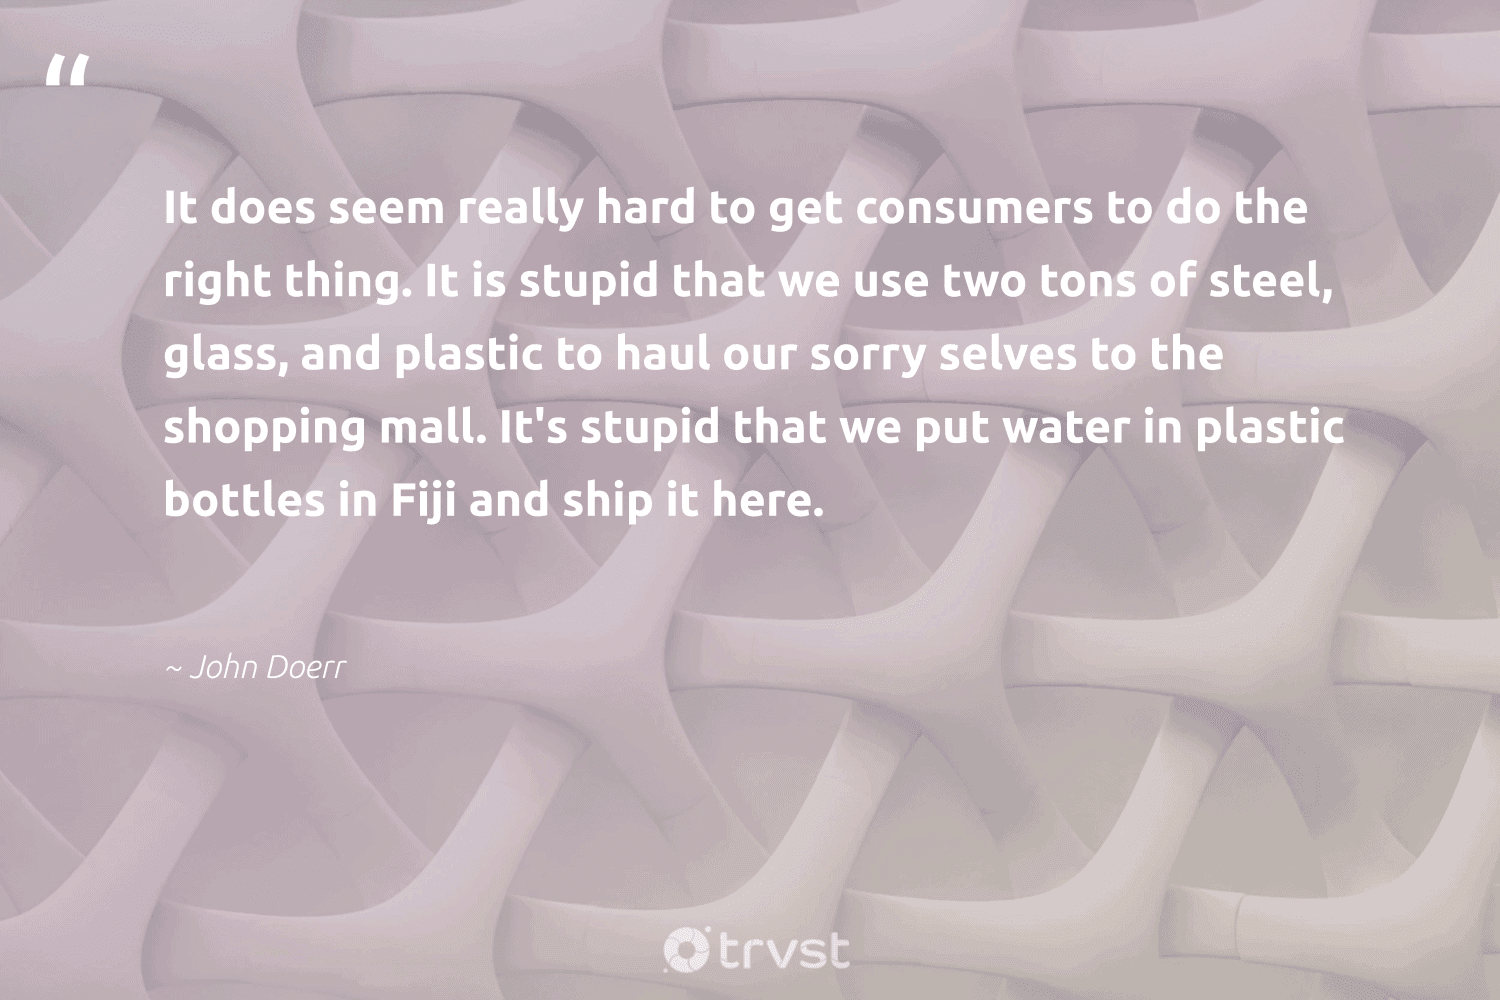 """""""It does seem really hard to get consumers to do the right thing. It is stupid that we use two tons of steel, glass, and plastic to haul our sorry selves to the shopping mall. It's stupid that we put water in plastic bottles in Fiji and ship it here.""""  - John Doerr #trvst #quotes #plasticwaste #dotherightthing #plastic #water #plasticfree #changeahabit #environment #impact #wastefree #sustainability"""